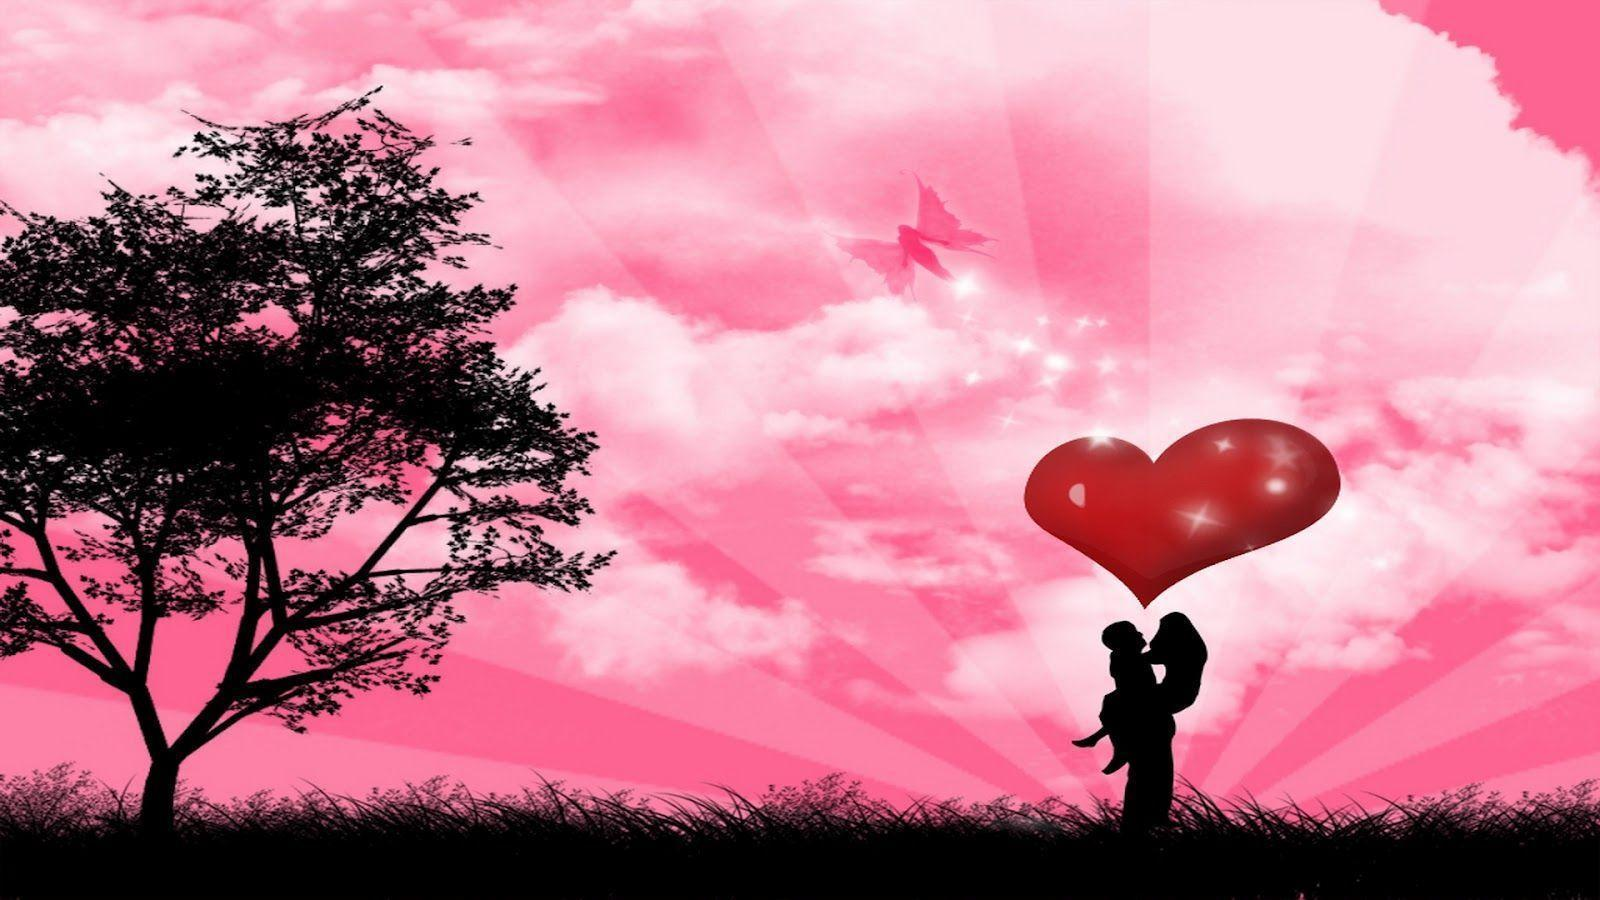 Romantic Love Wallpapers For Pc : Love Romantic Wallpapers - Wallpaper cave